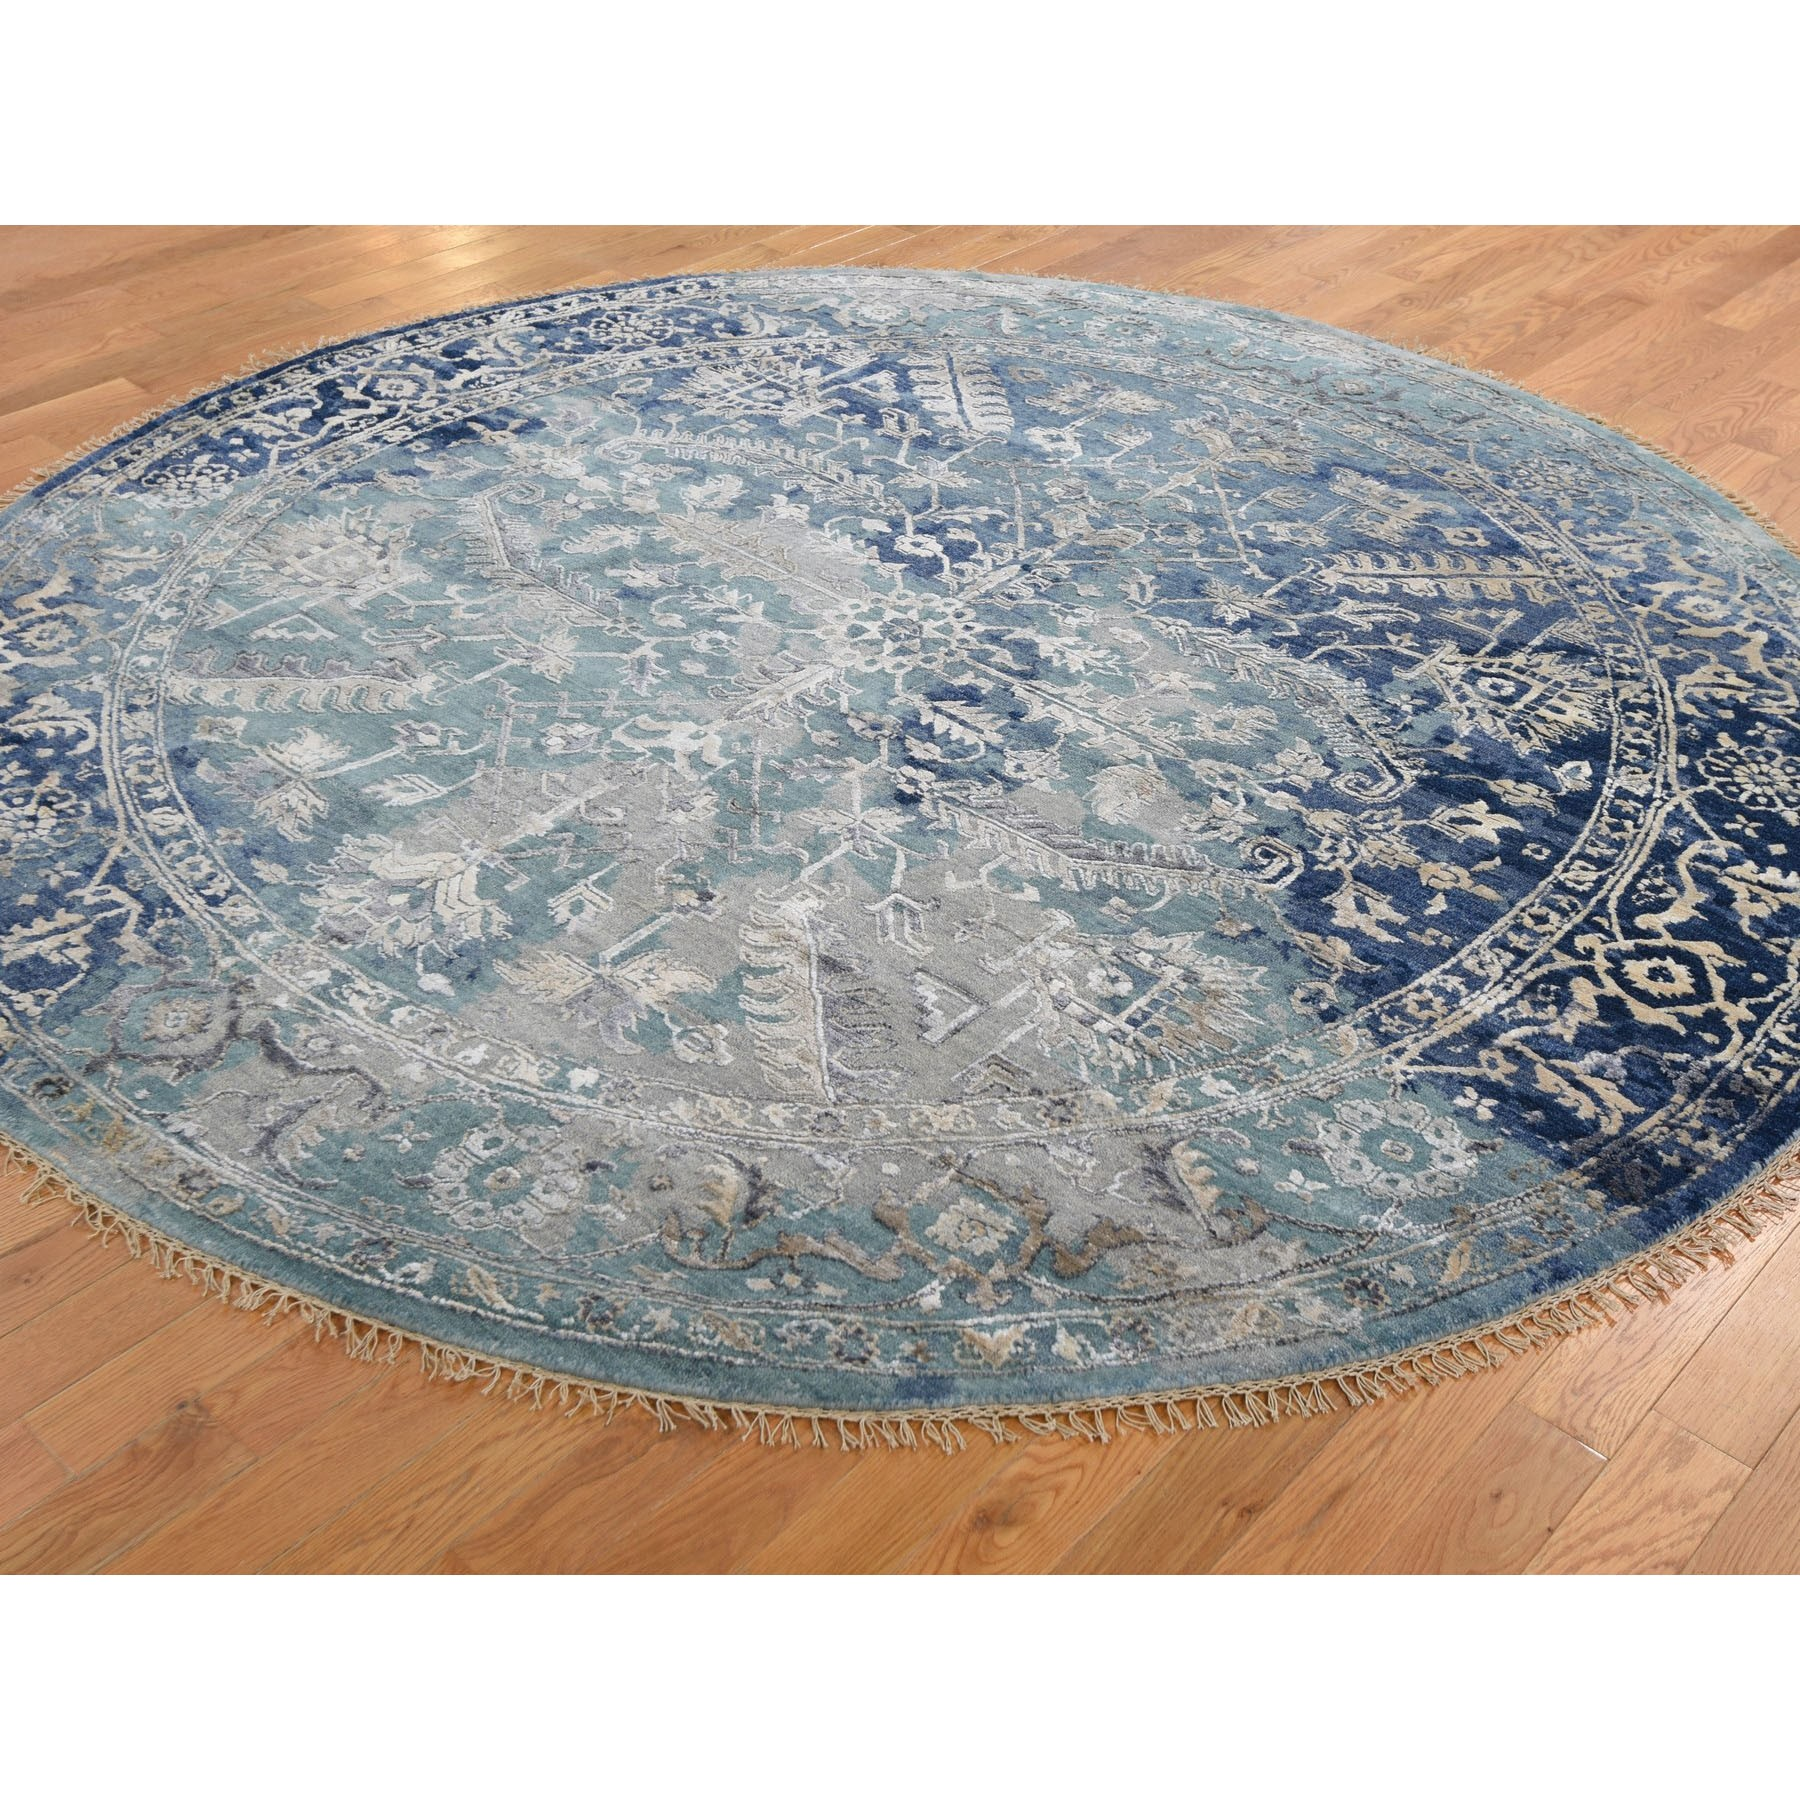 8'x8' Round Broken Persian Heriz All Over Design Wool And Silk Hand Knotted Oriental Rug